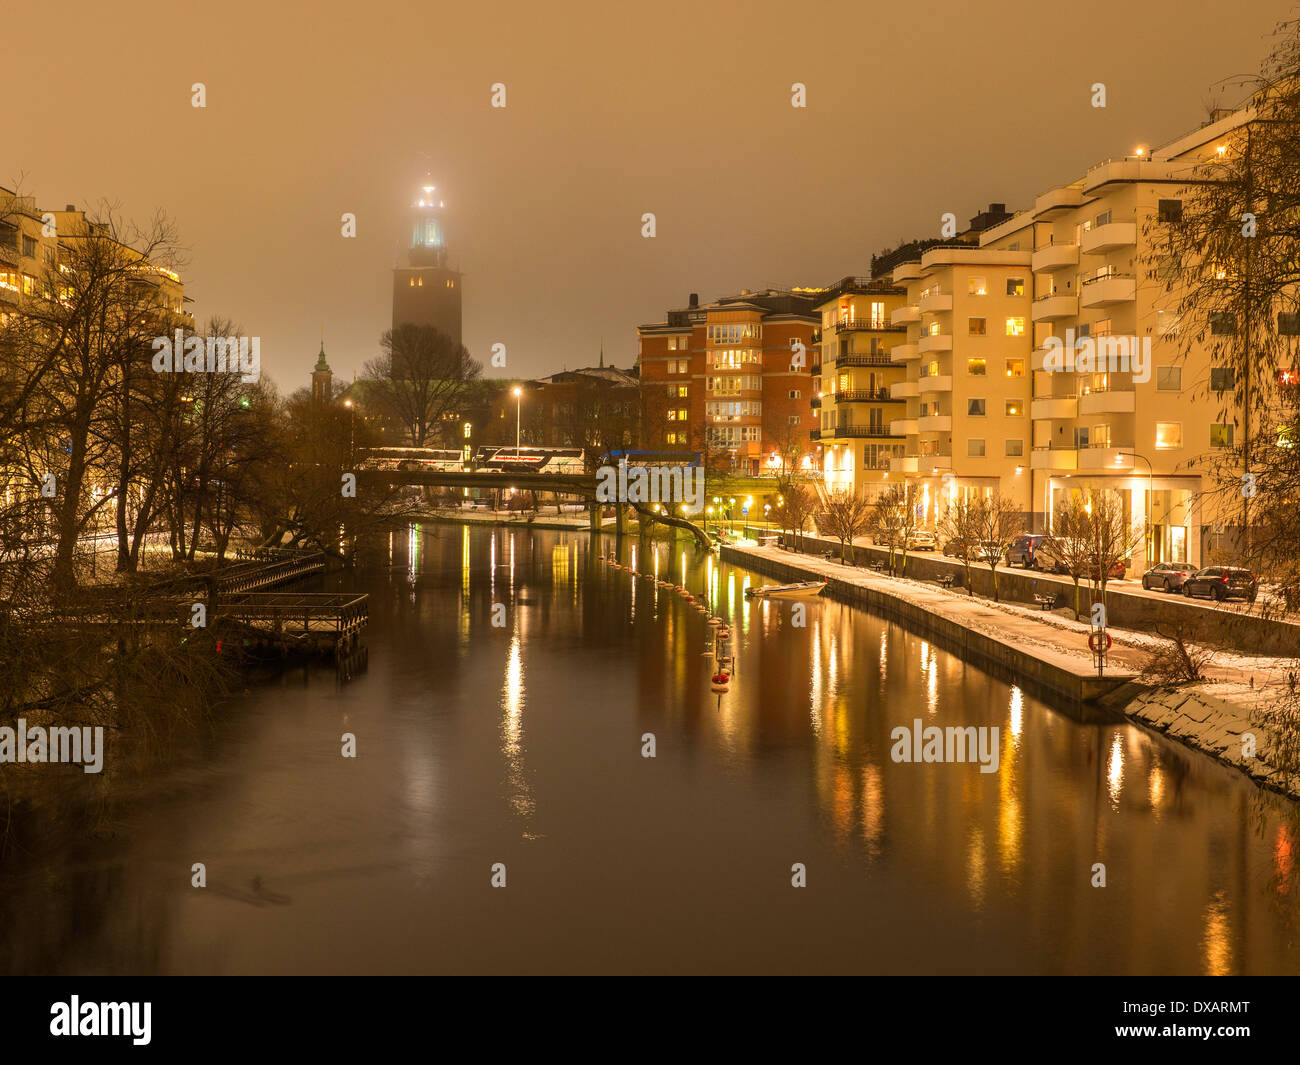 Evening view of Klara Sjö, ('Lake Klara'),  a waterway in Central Stockholm, separating Kungsholmen and Norrmalm.  Stockholm City Hall tower is seen. - Stock Image